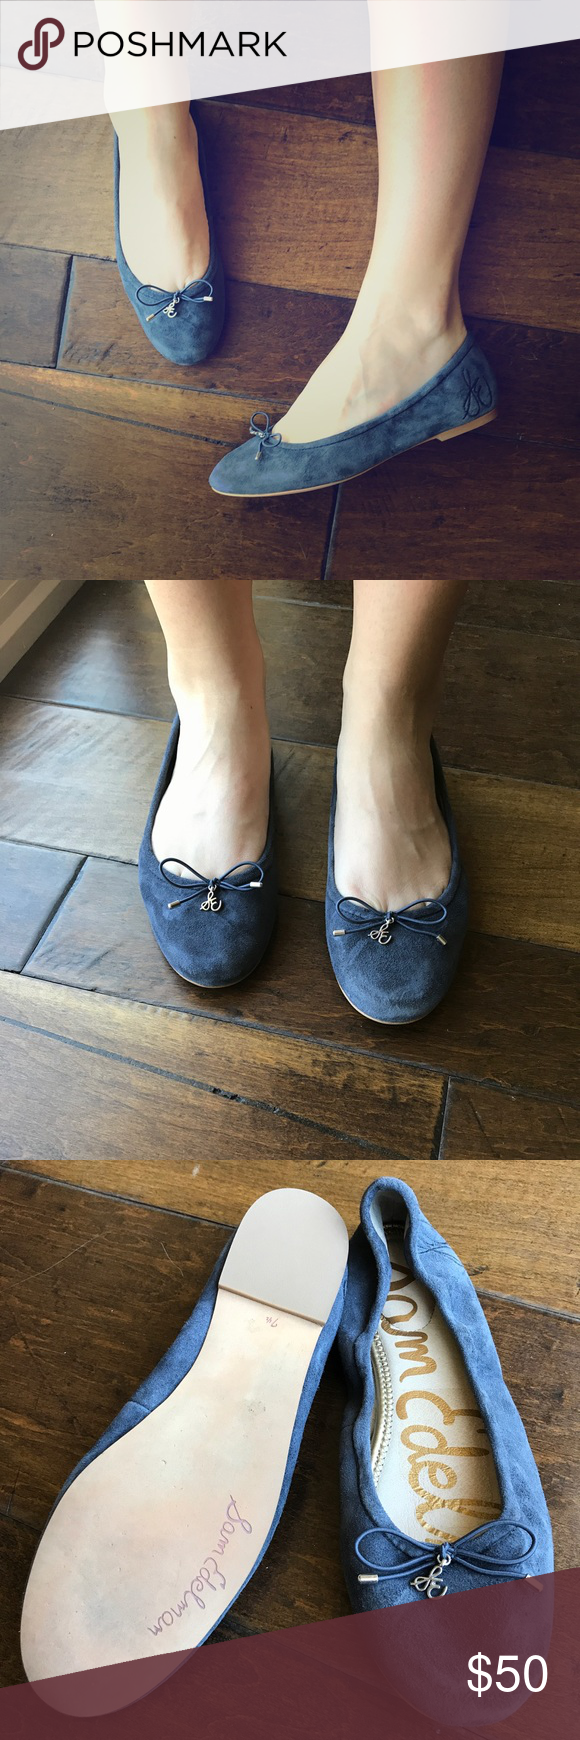 3e3222baaeb42d Sam Edelman Ballet Flats Sam Edelman  Felicia  ballet flats. Lovely purple-blue  suede color. These flats are very soft and have excellent heel cushioning.